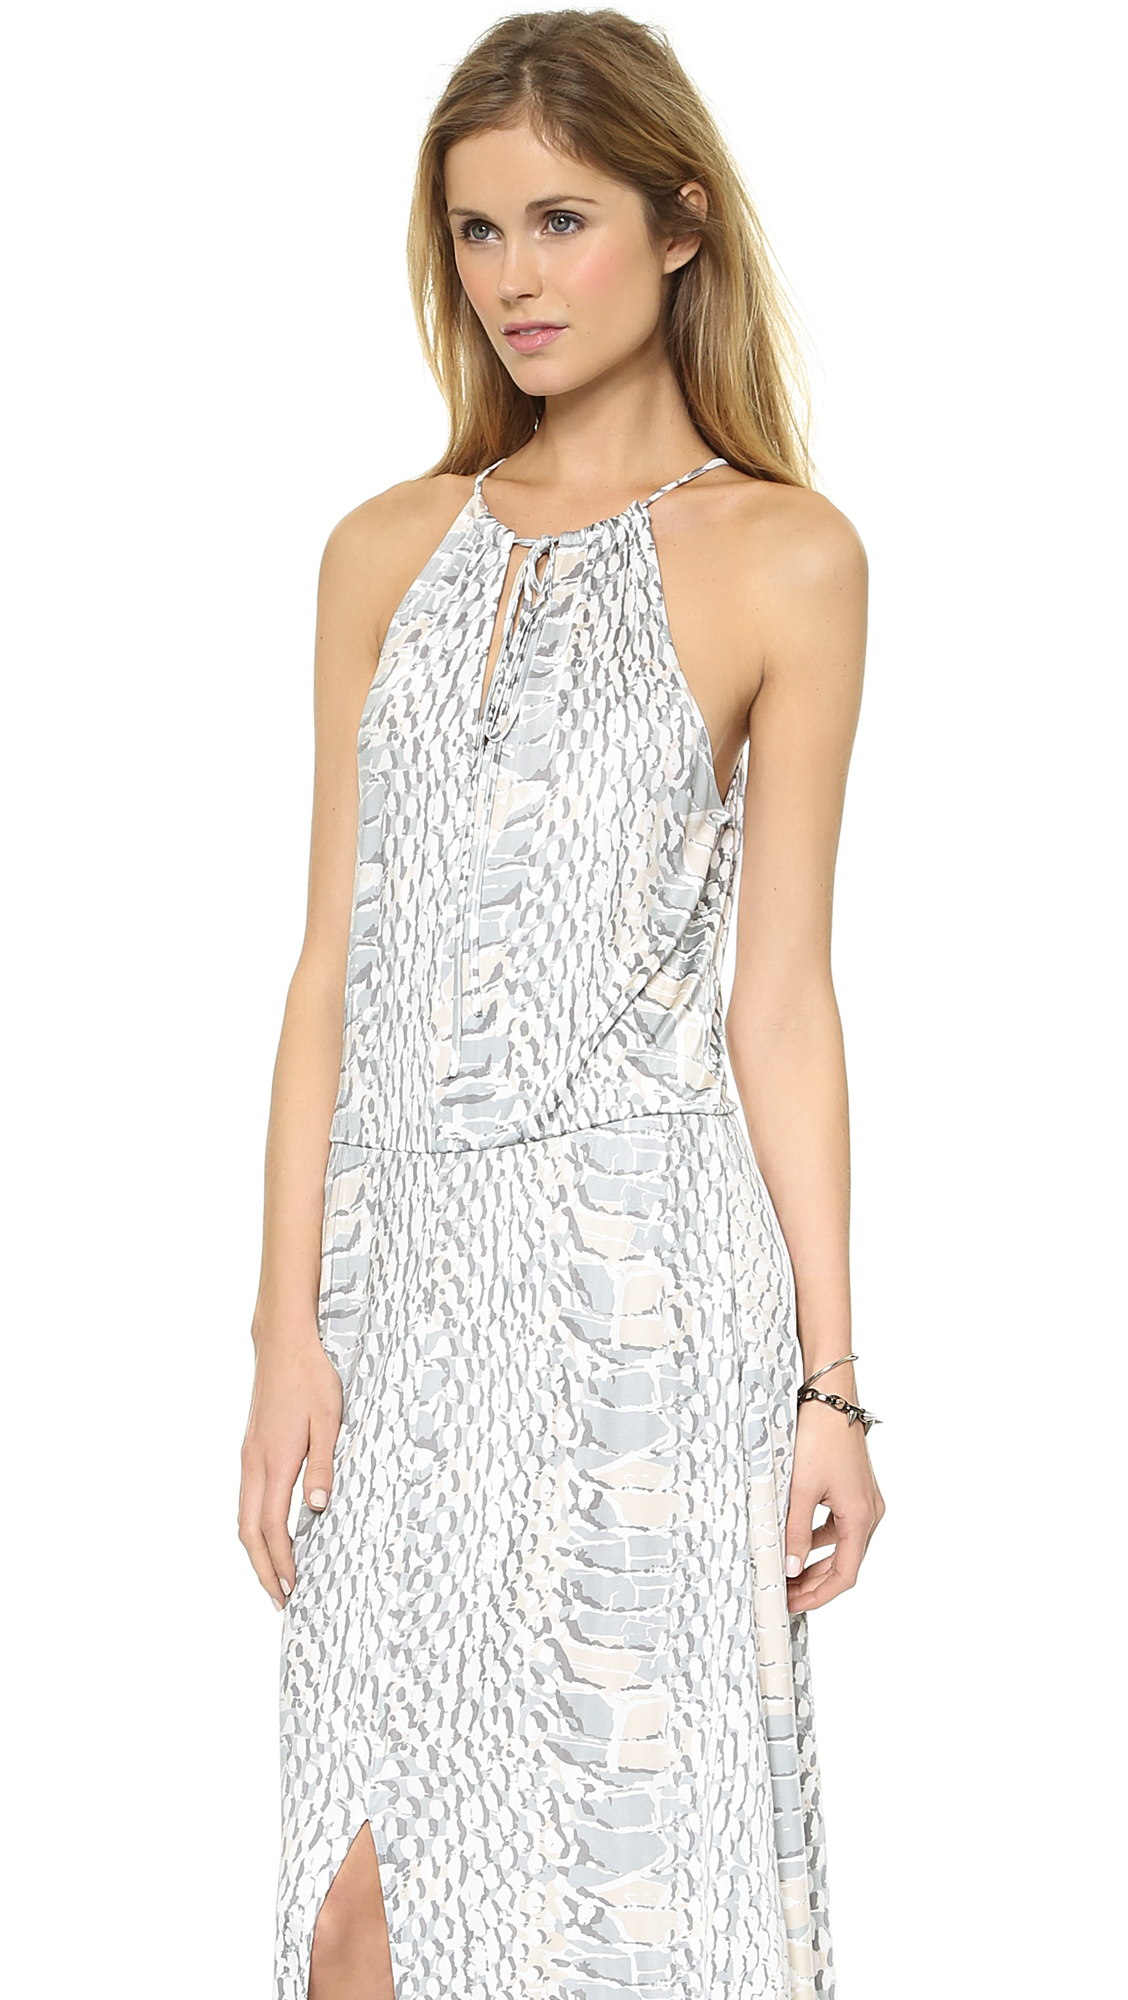 Parker Madera Maxi Dress | 15% off first app purchase with code ...